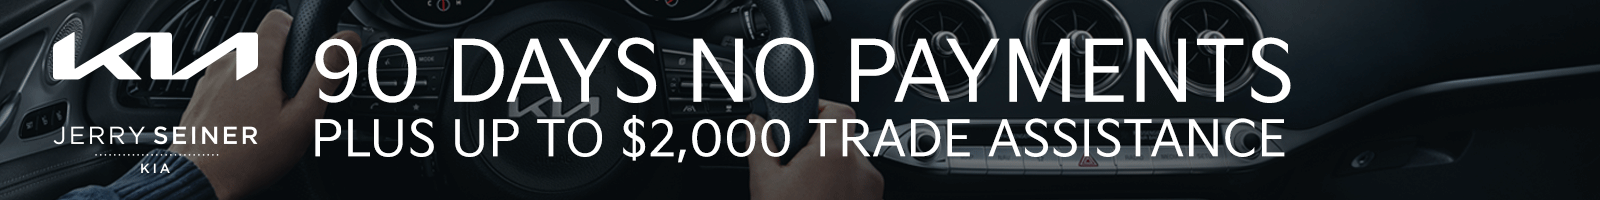 90 Days No Payment